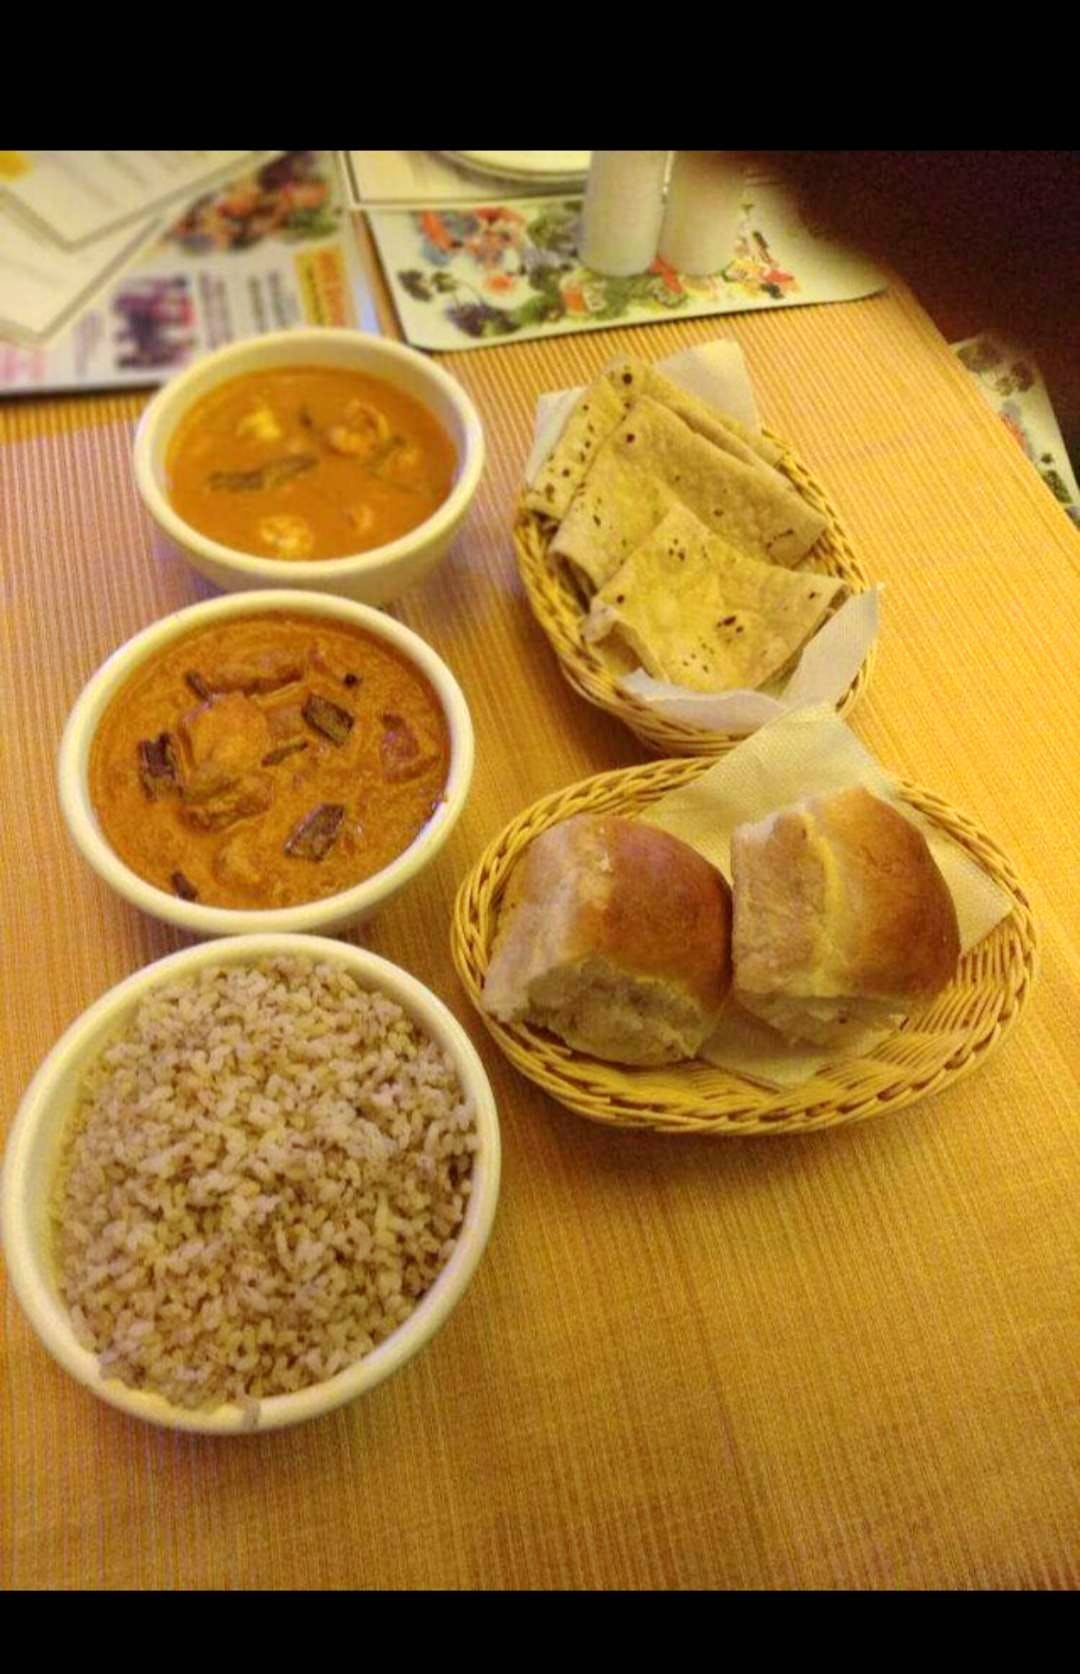 Dish,Food,Cuisine,Ingredient,Meal,Indian cuisine,Produce,Curry,Recipe,Rajasthani cuisine